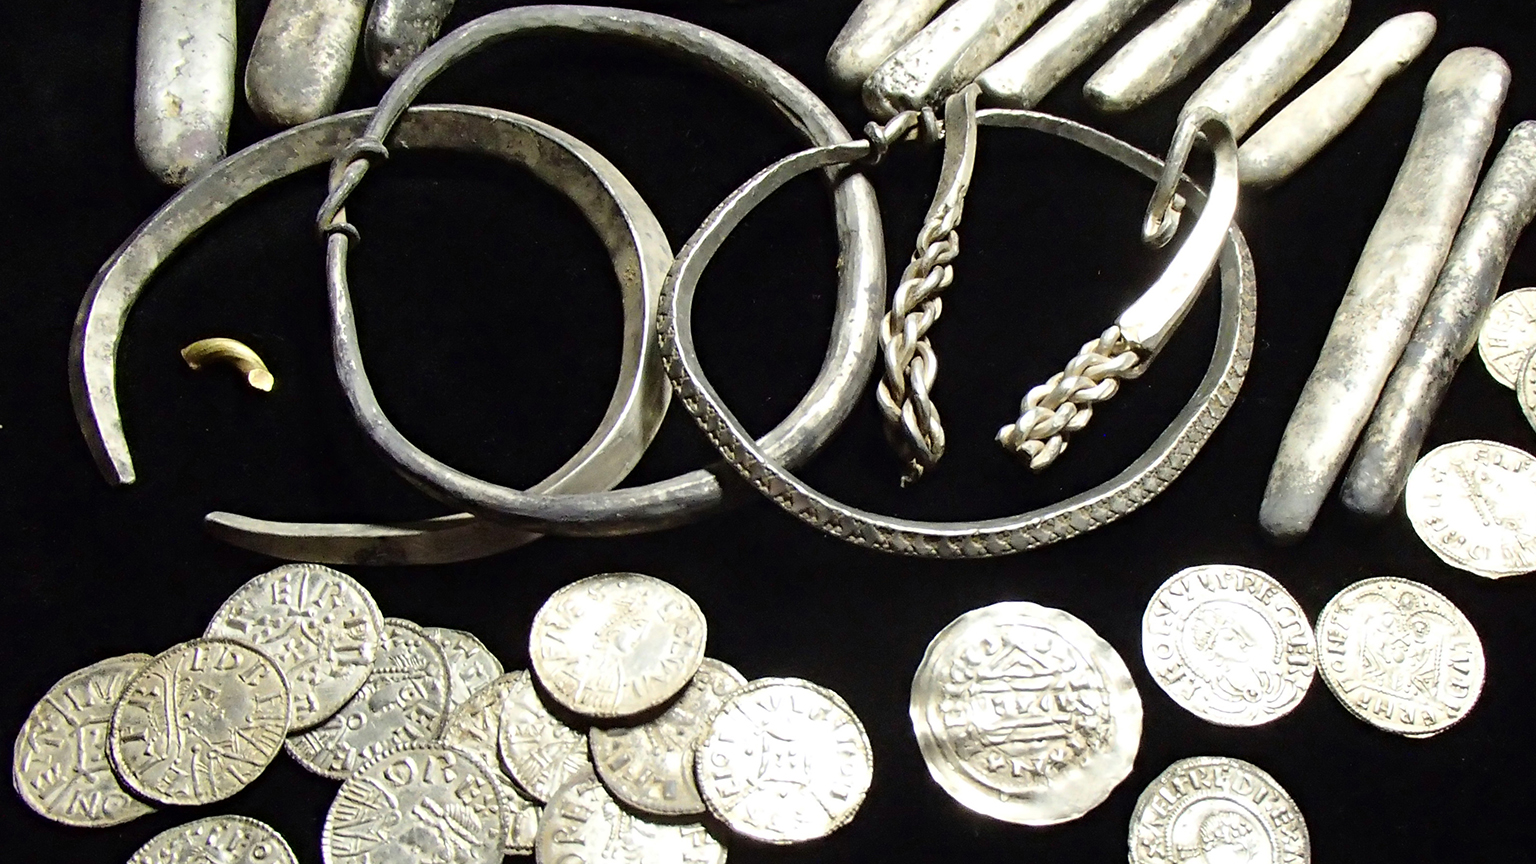 Selection of items from the Watlington Hoard showing the range of objects discovered: arm-rings, ingots, coins and cut-up pieces of silver and gold